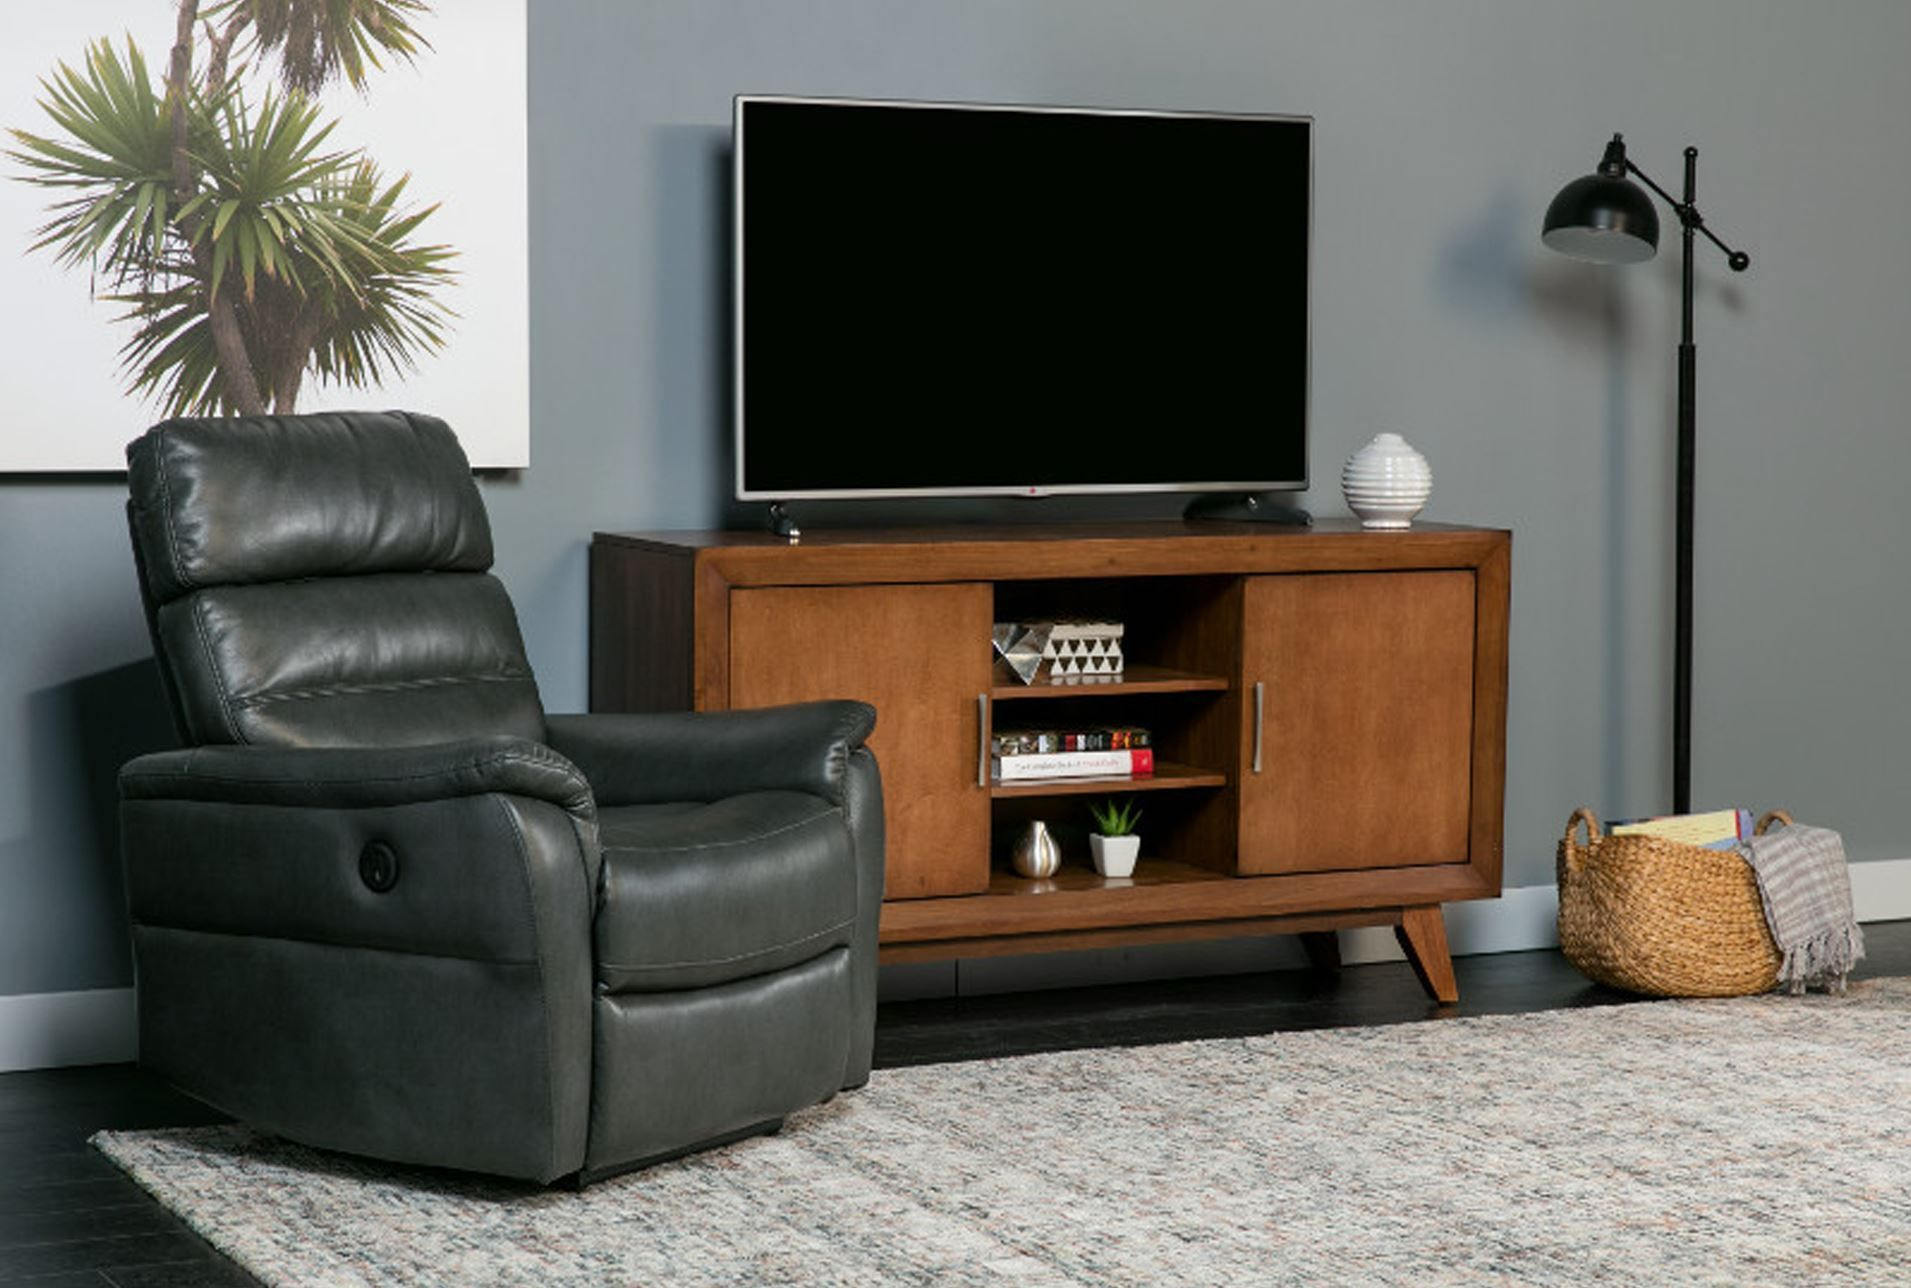 Abbott Chestnut 60 Inch Tv Stand | New Apartment | Pinterest | 60 throughout Abbot 60 Inch Tv Stands (Image 1 of 30)